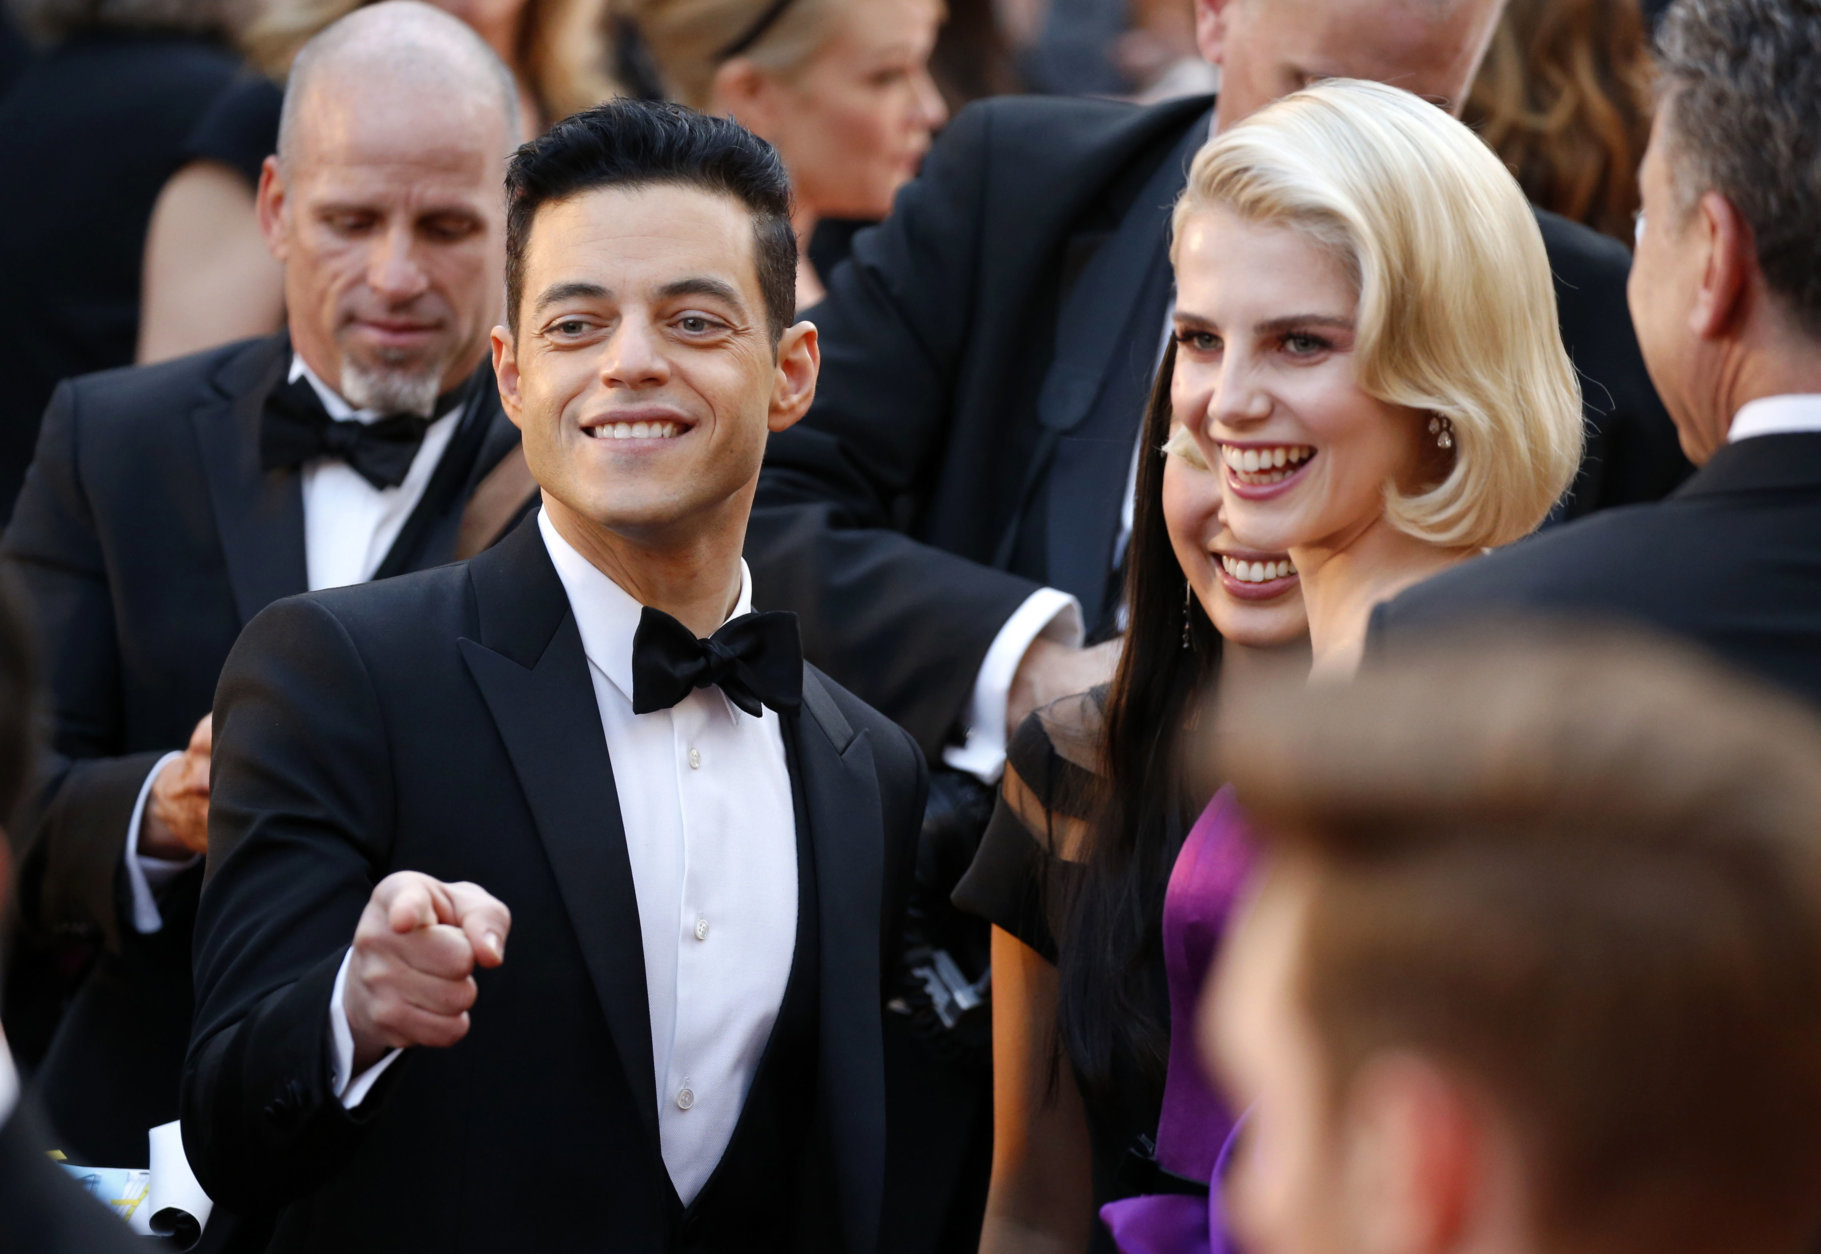 Rami Malek, left, and Lucy Boynton arrive at the Oscars on Sunday, Feb. 24, 2019, at the Dolby Theatre in Los Angeles. (Photo by Eric Jamison/Invision/AP)